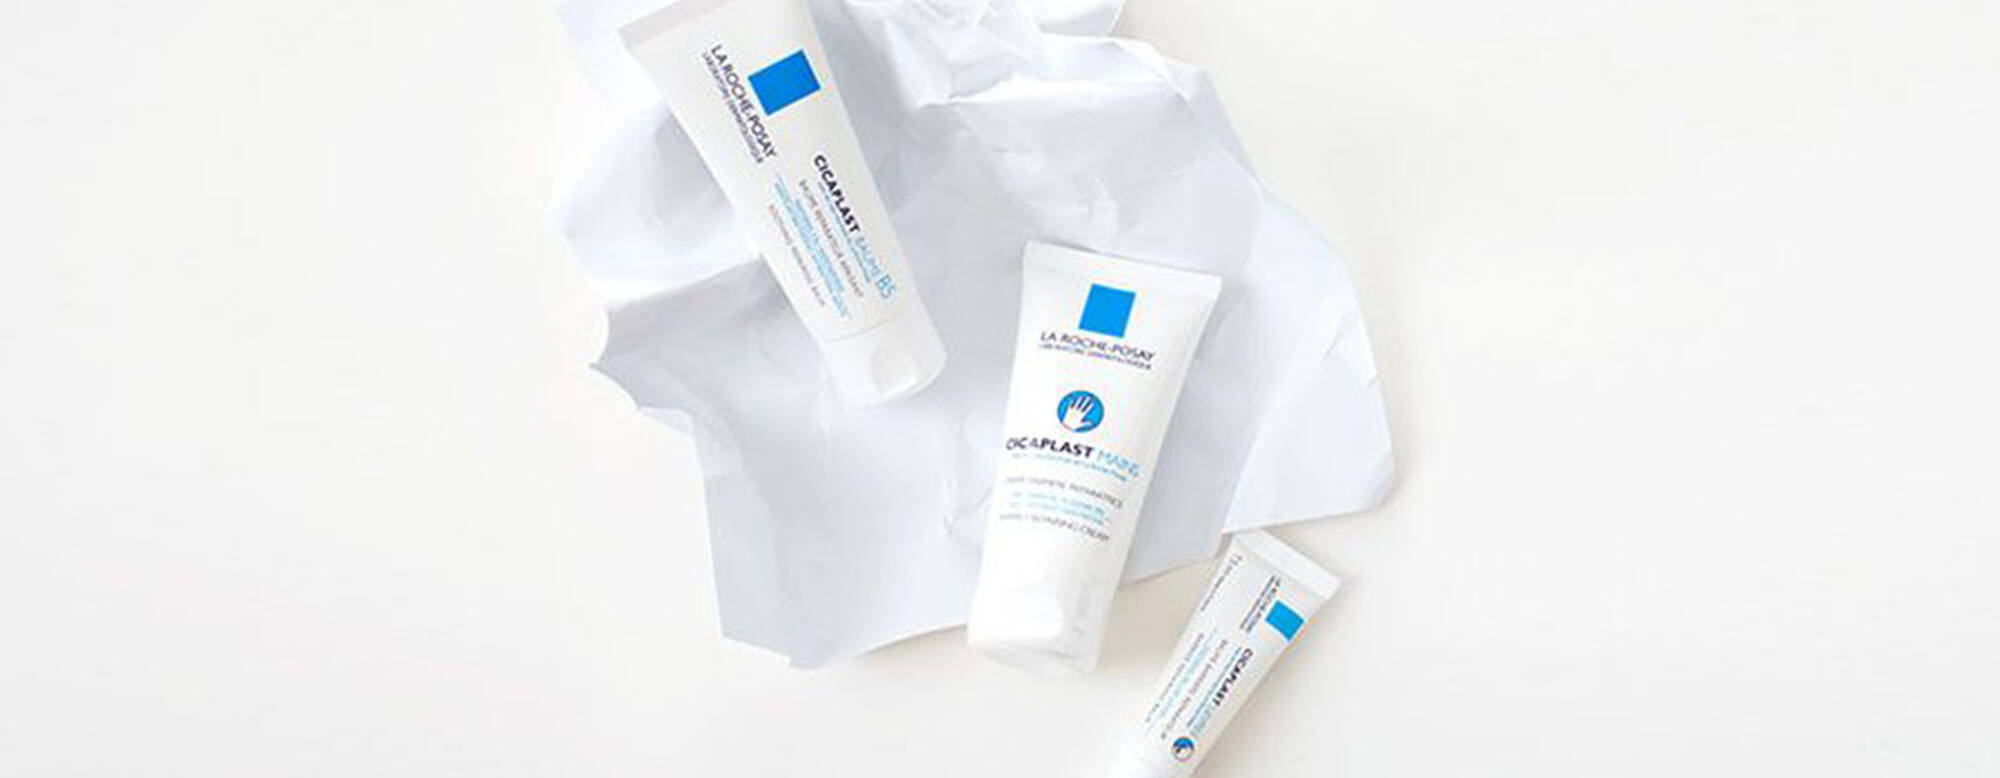 REPAIR YOUR SKIN'S MOISTURE BARRIER WITH CICAPLAST